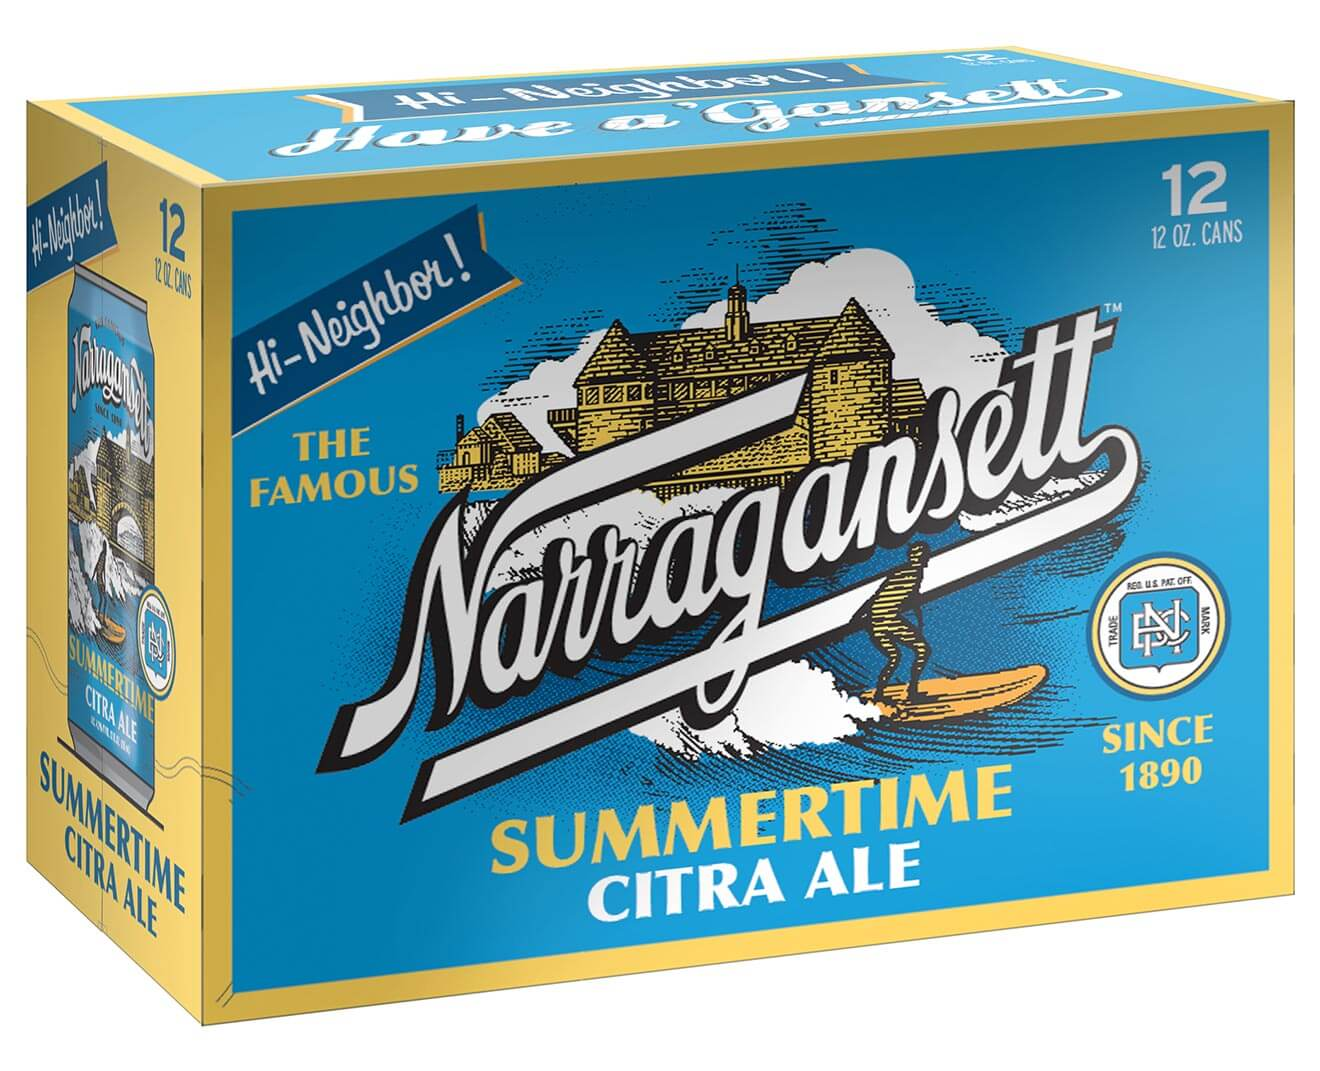 Summertime Citra Ale, beer news, featured image